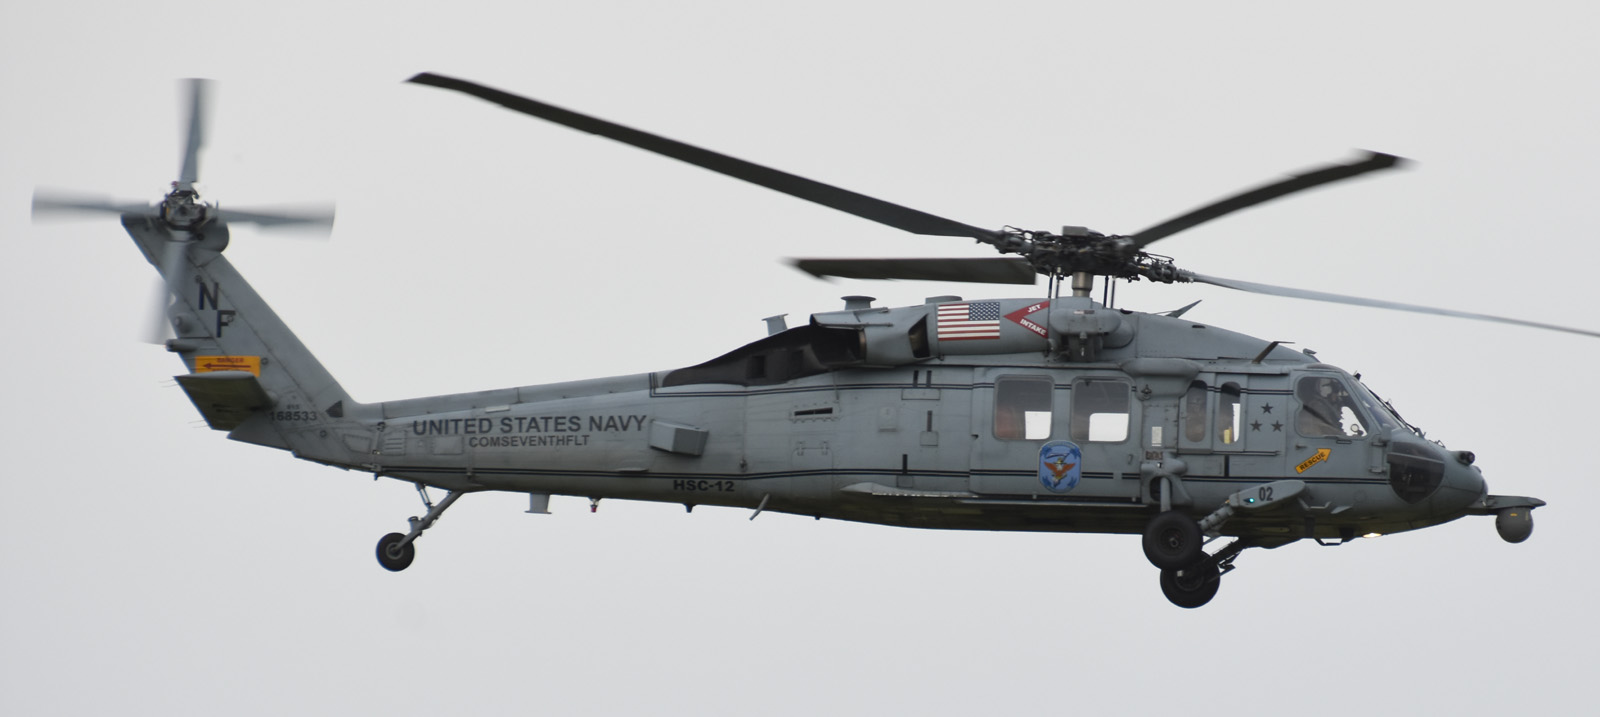 Mh60s170524g684